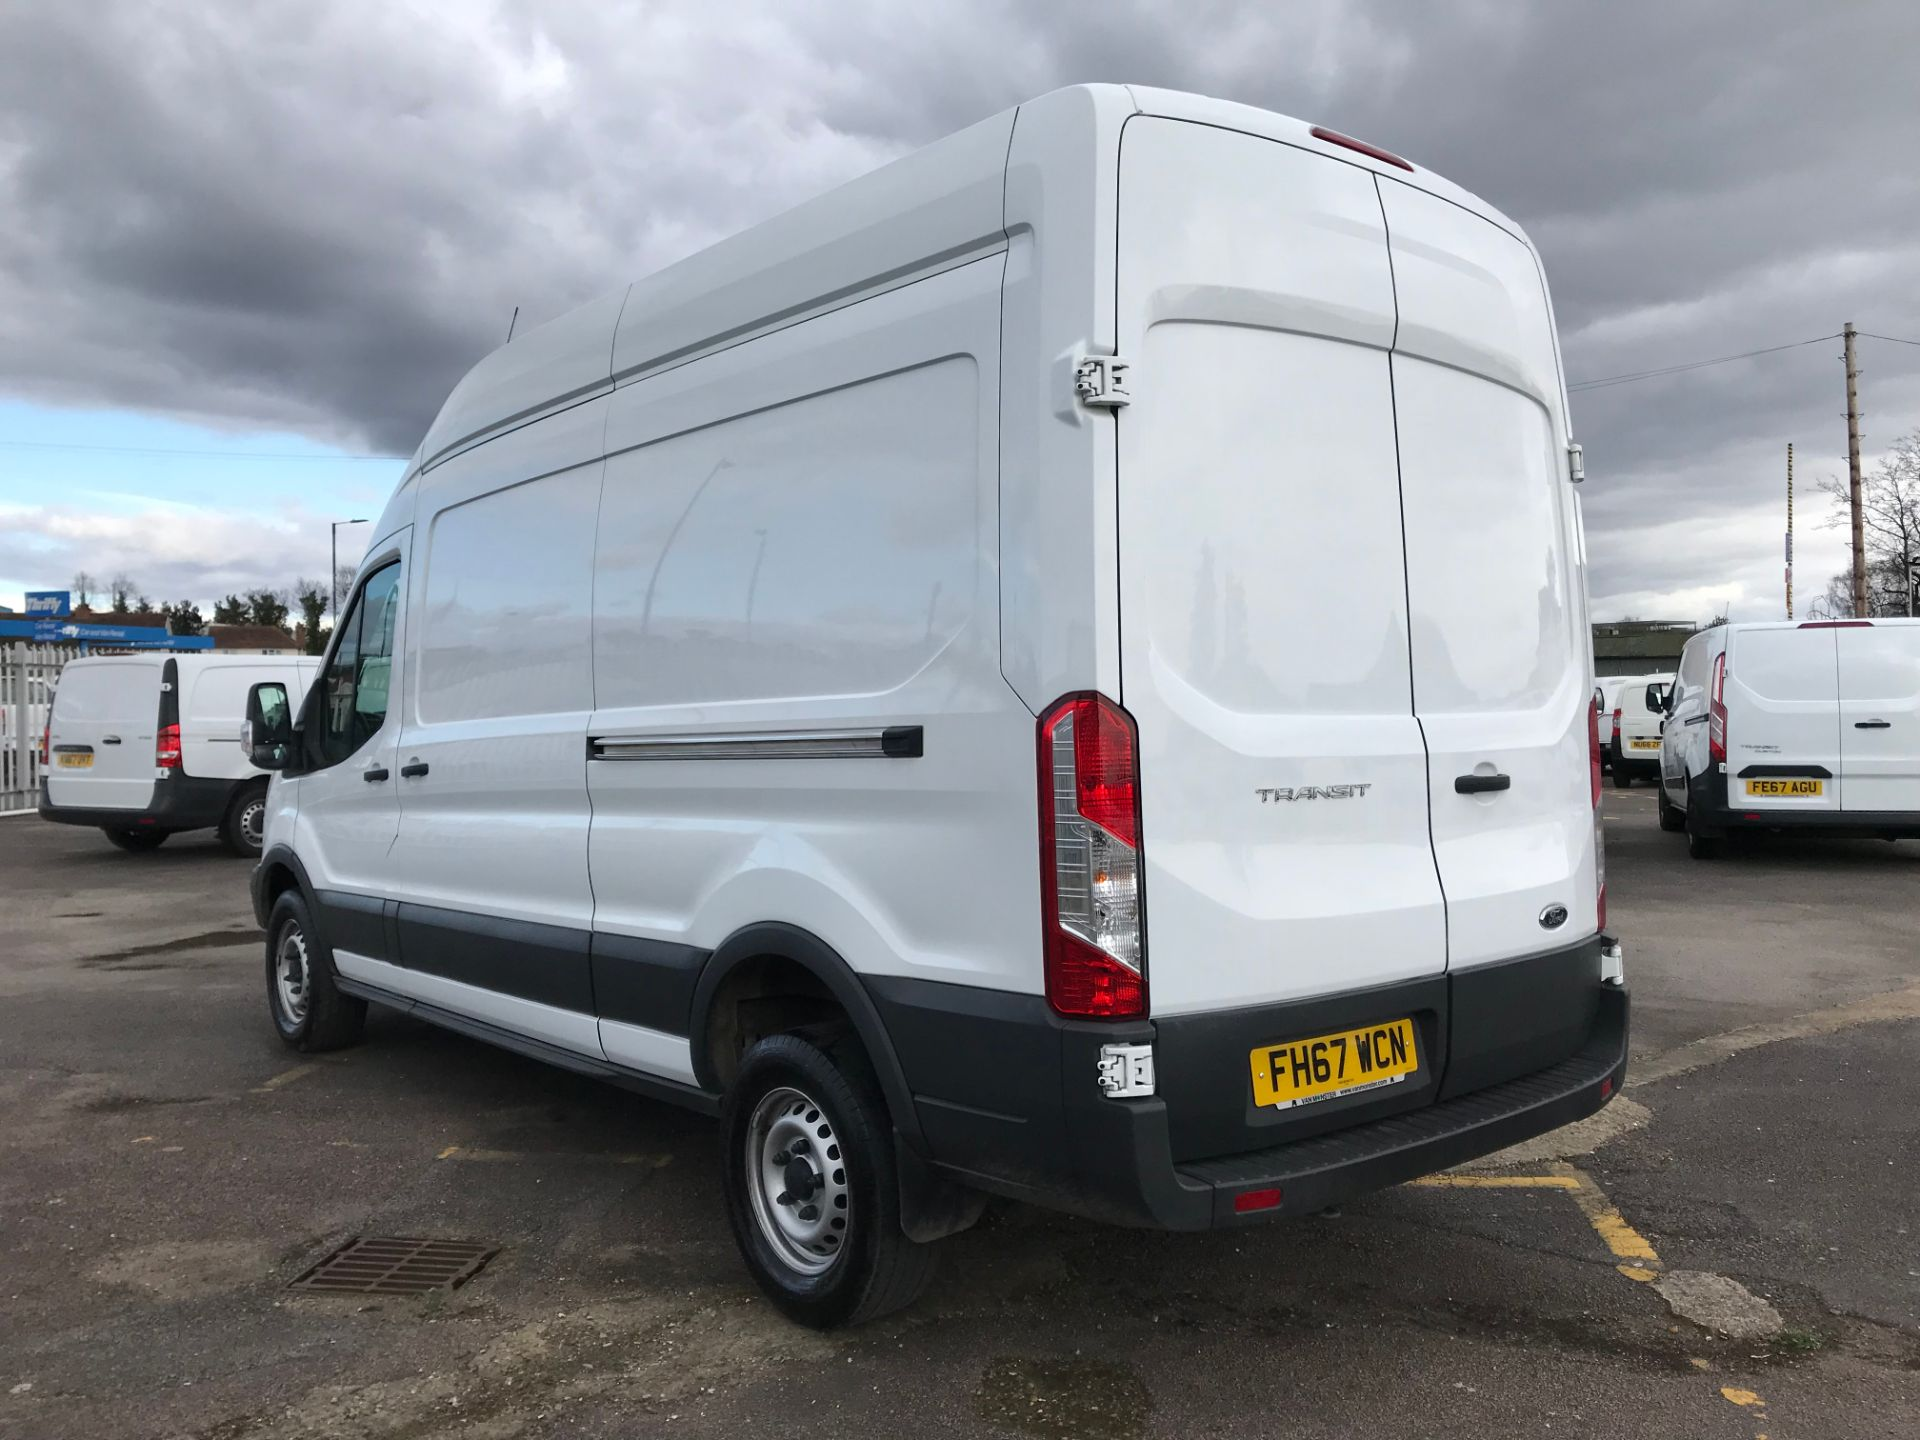 2018 Ford Transit 2.0 Tdci 130Ps H3 Van (FH67WCN) Image 5